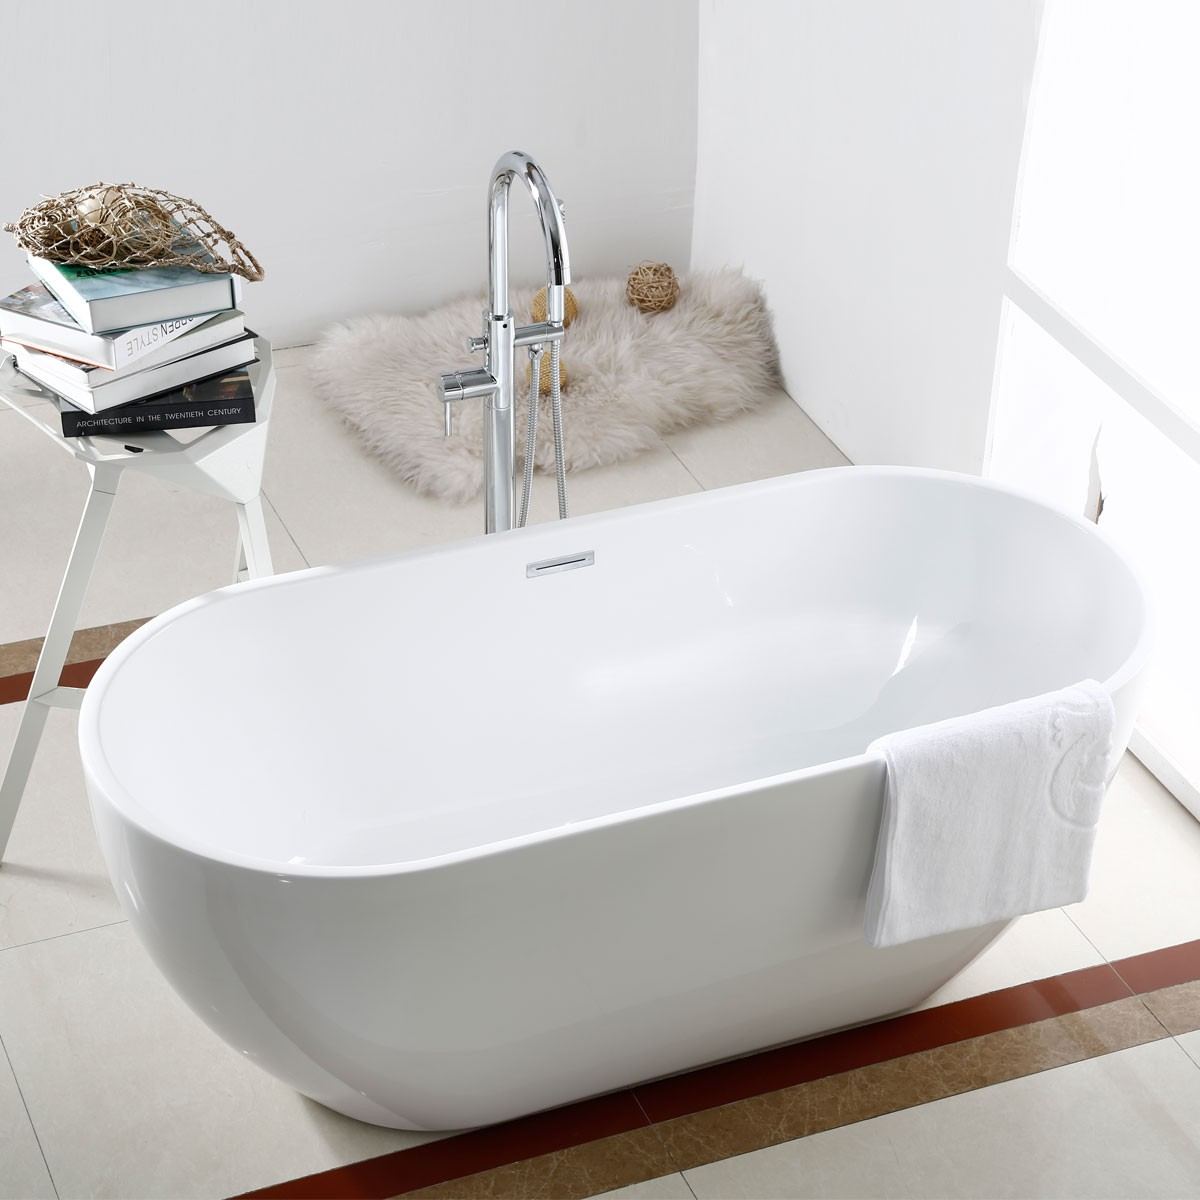 60 In White Acrylic Seamless Freestanding Bathtub (DK AT 11572)